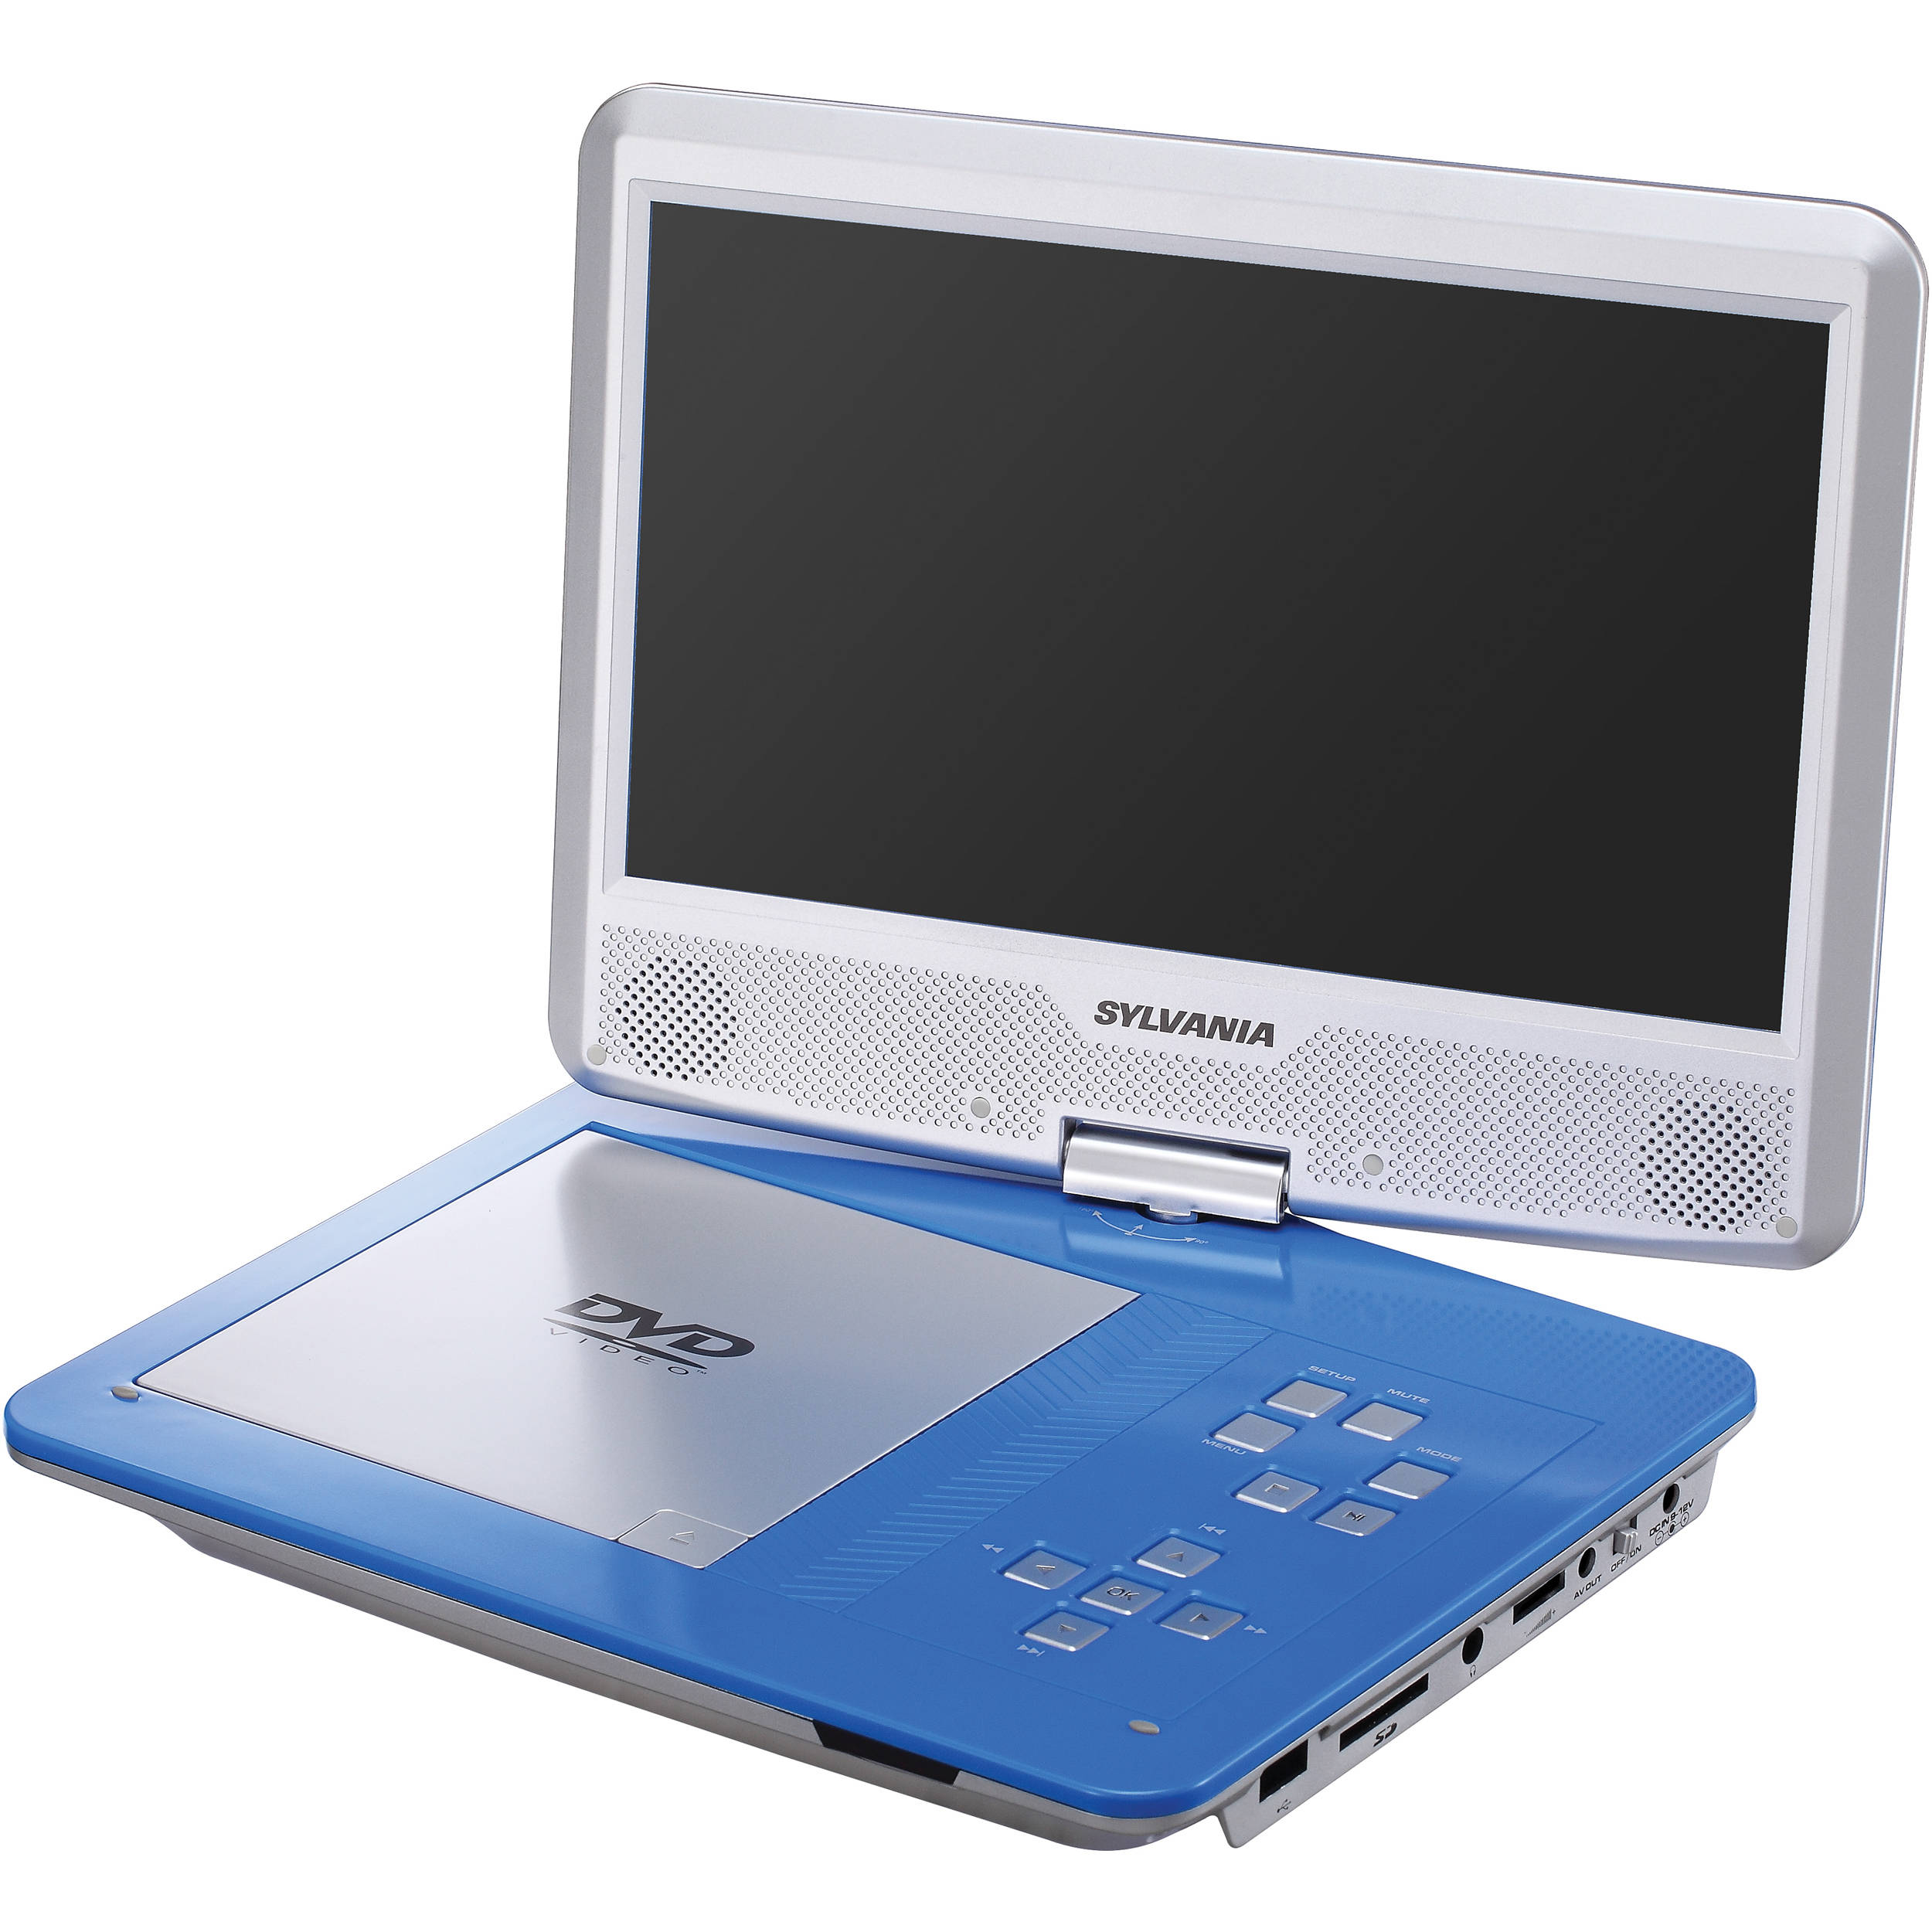 Sylvania portable dvd player sdvd10reviews